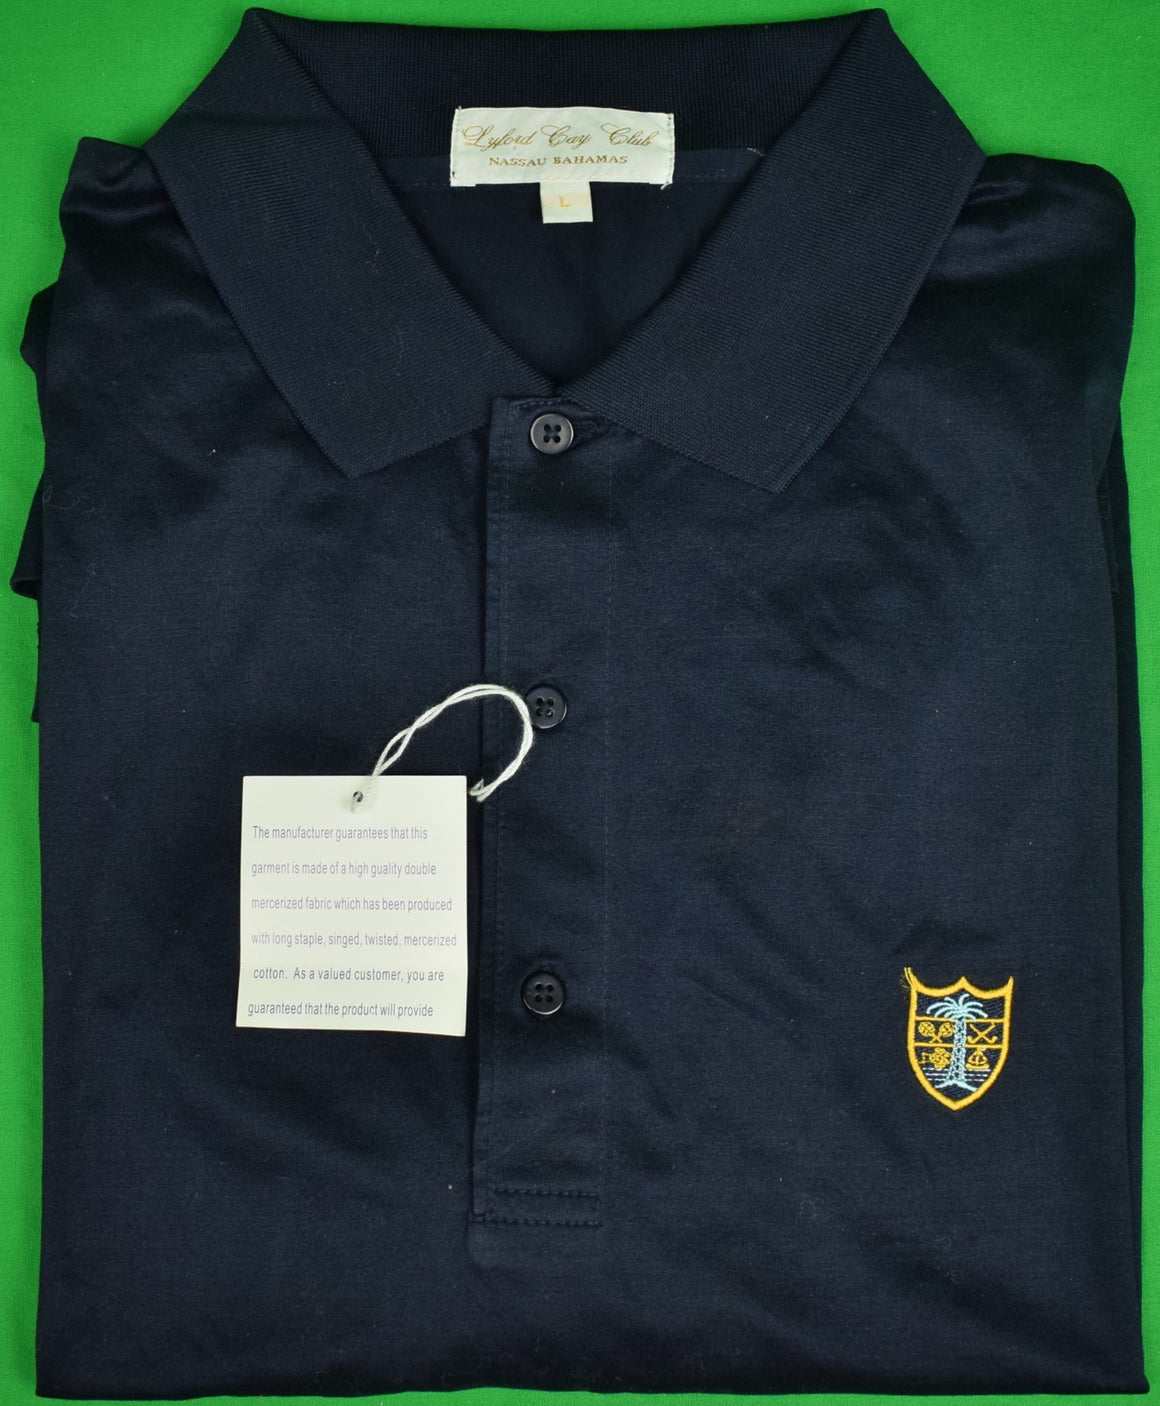 Lyford Cay Club Navy Cotton Lisle Sport Shirt Sz: L (New w/ Tag!)